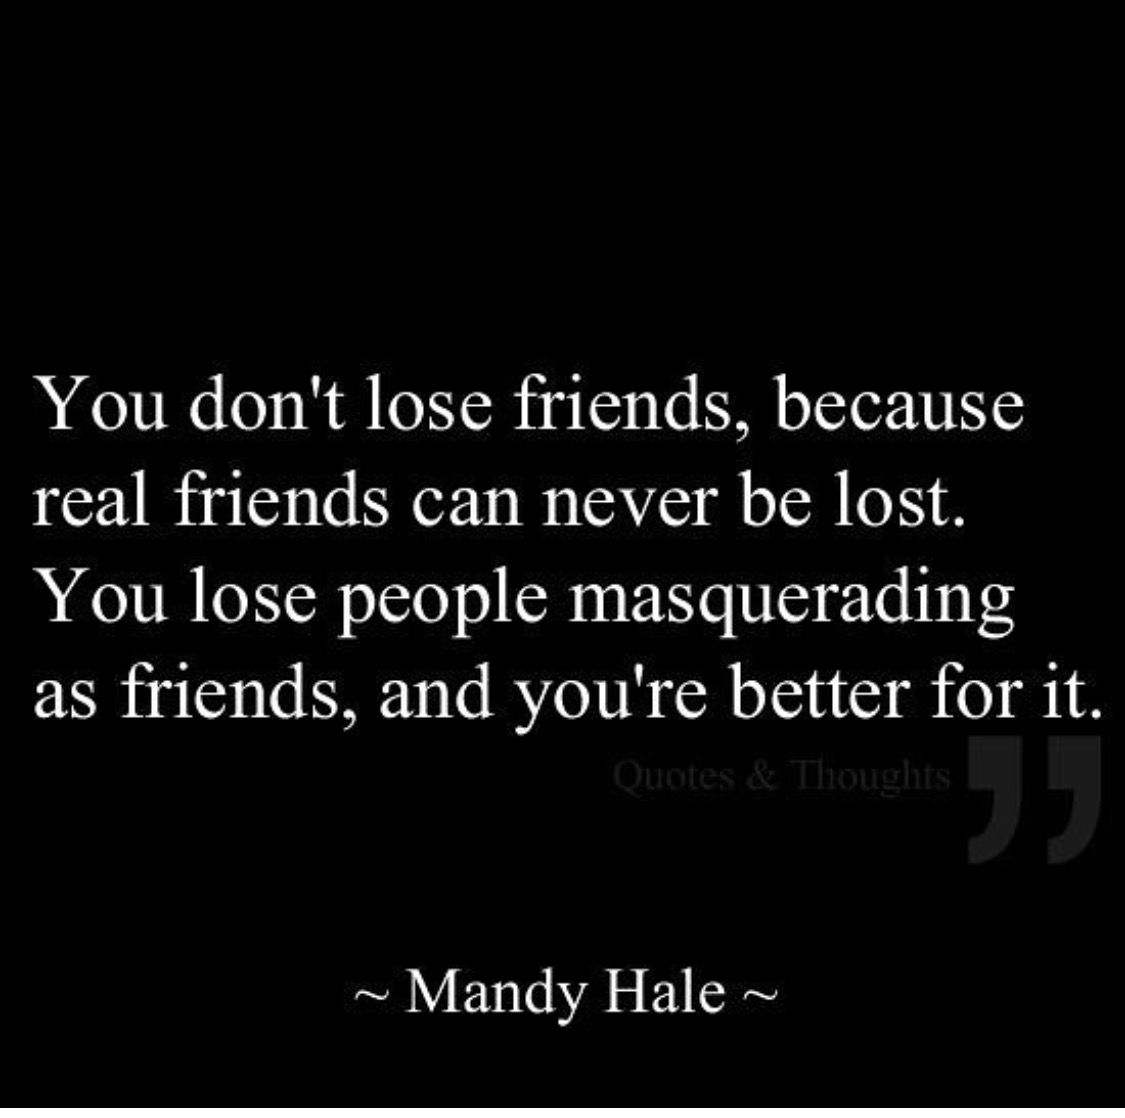 Mandy Hale Quotes Fair Mandy Hale Quote  Online Sayings  Pinterest  Truths .